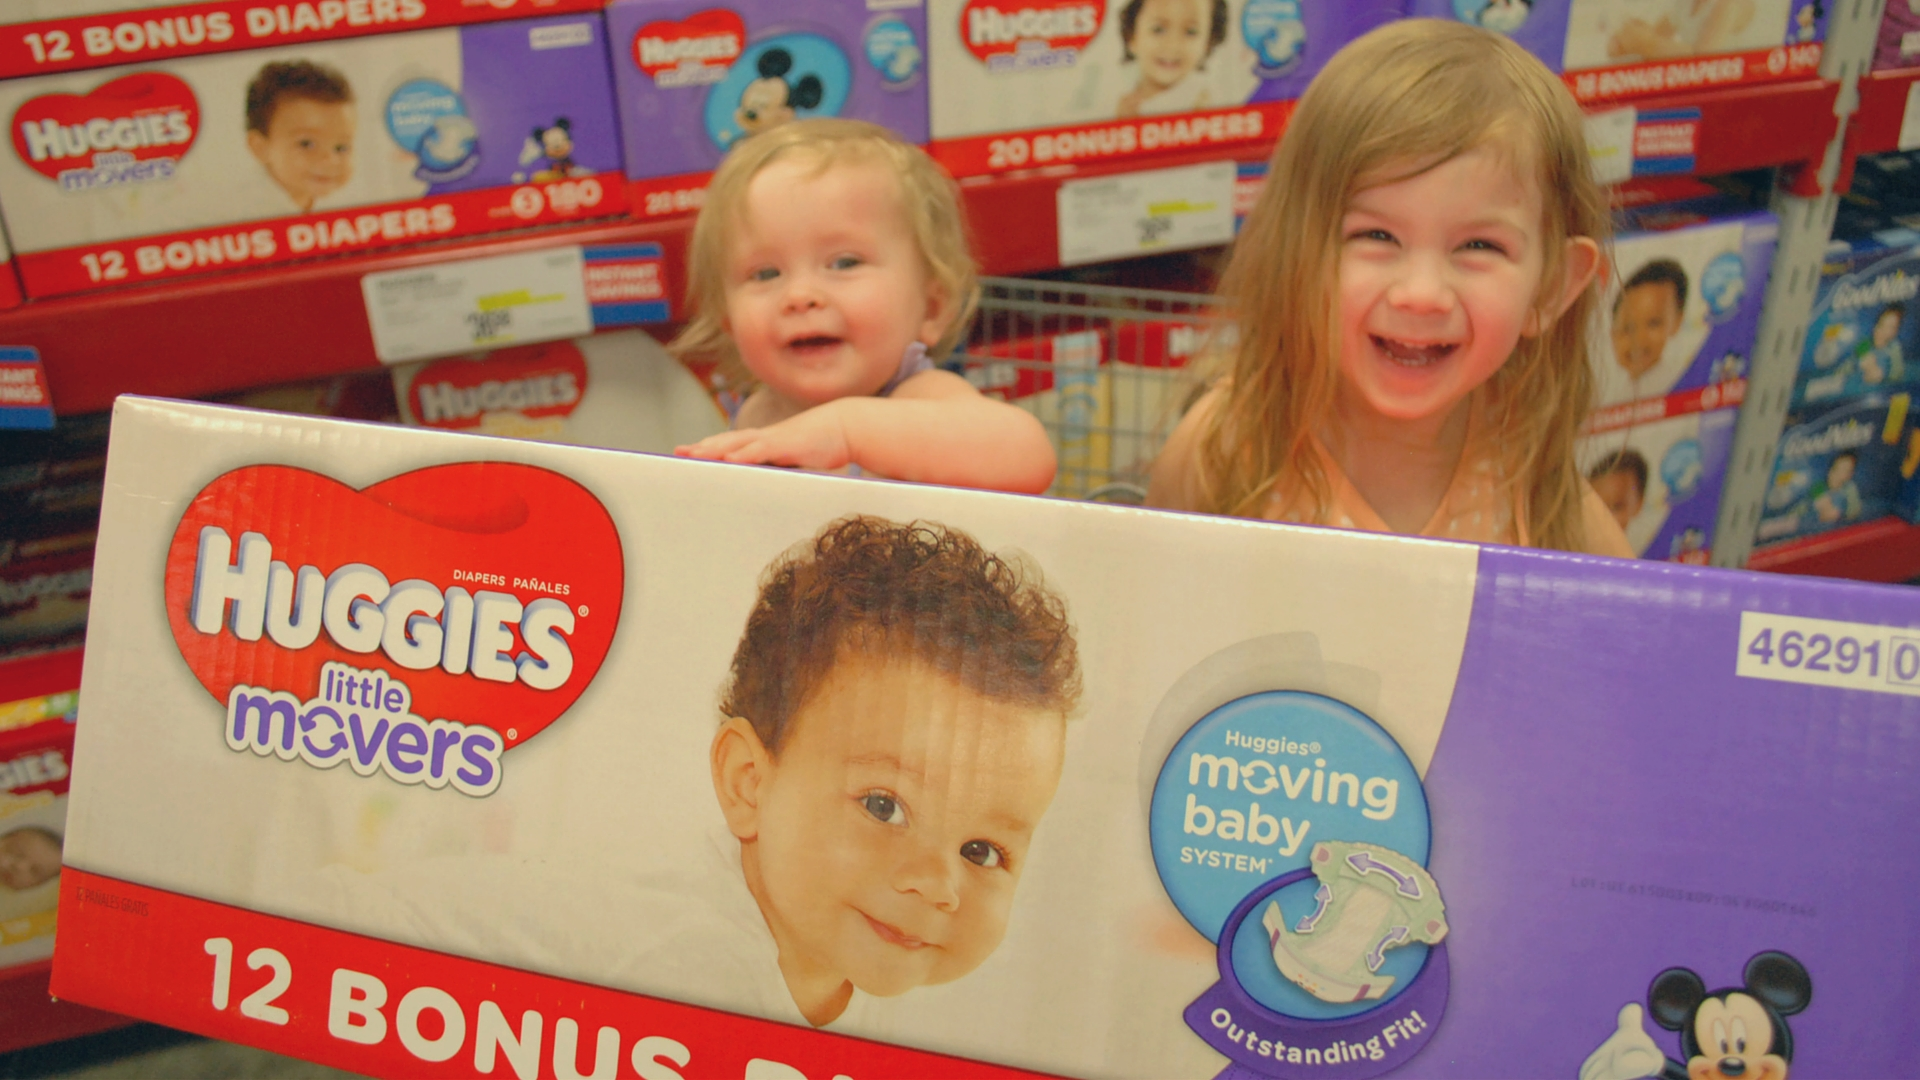 They know what they want! Huggies Little Movers (click for savings and contests to WIN)